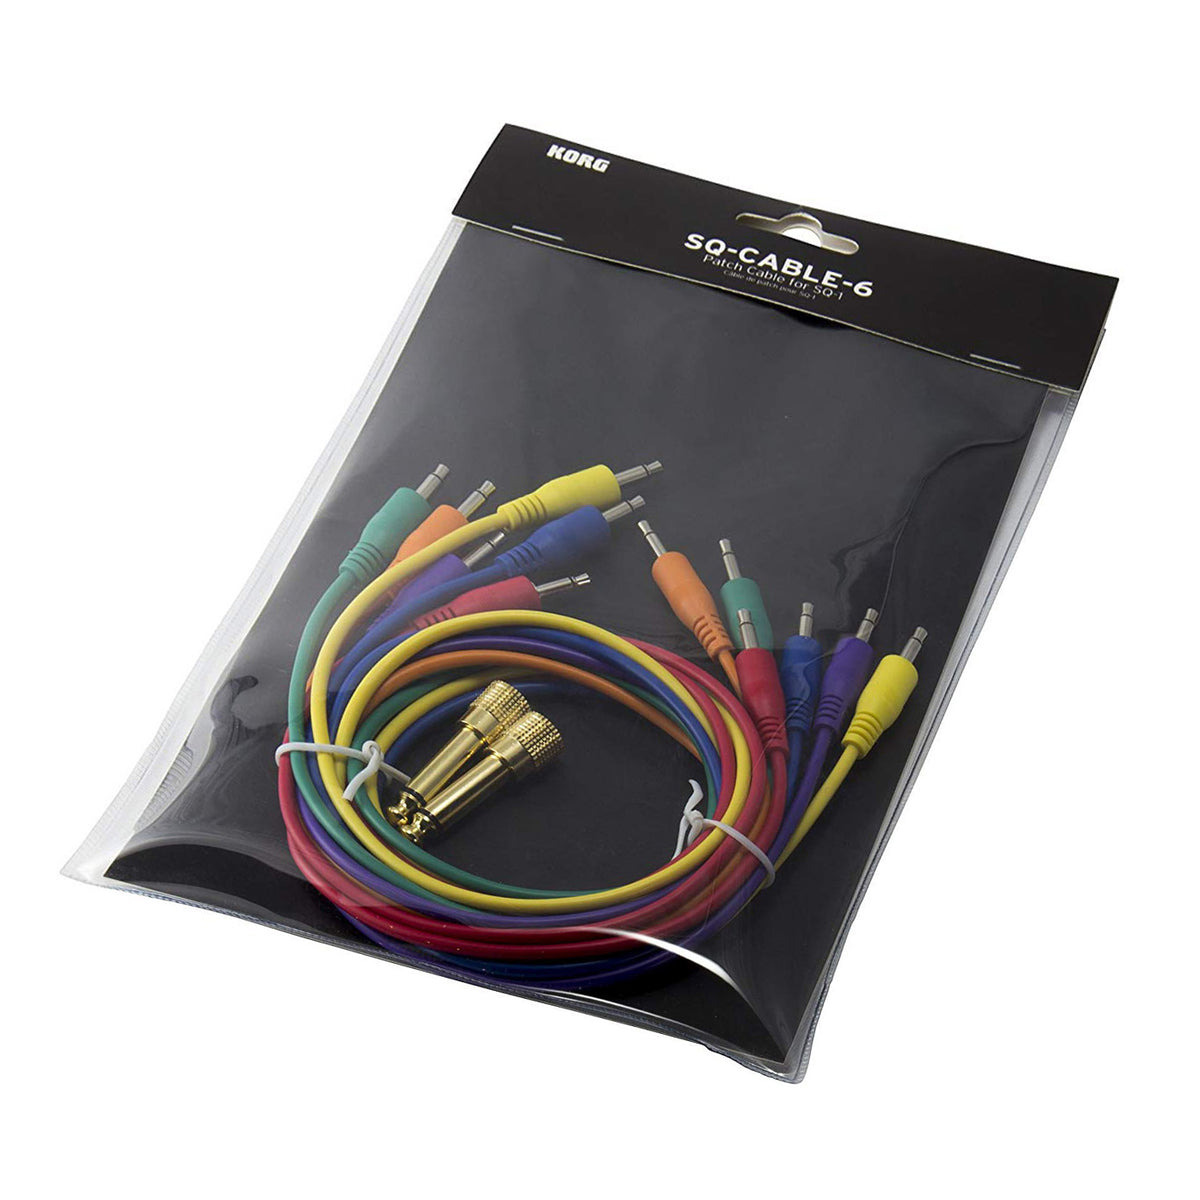 Korg: Cable Pack For SQ-1, MS-20M (SQCABLE6)